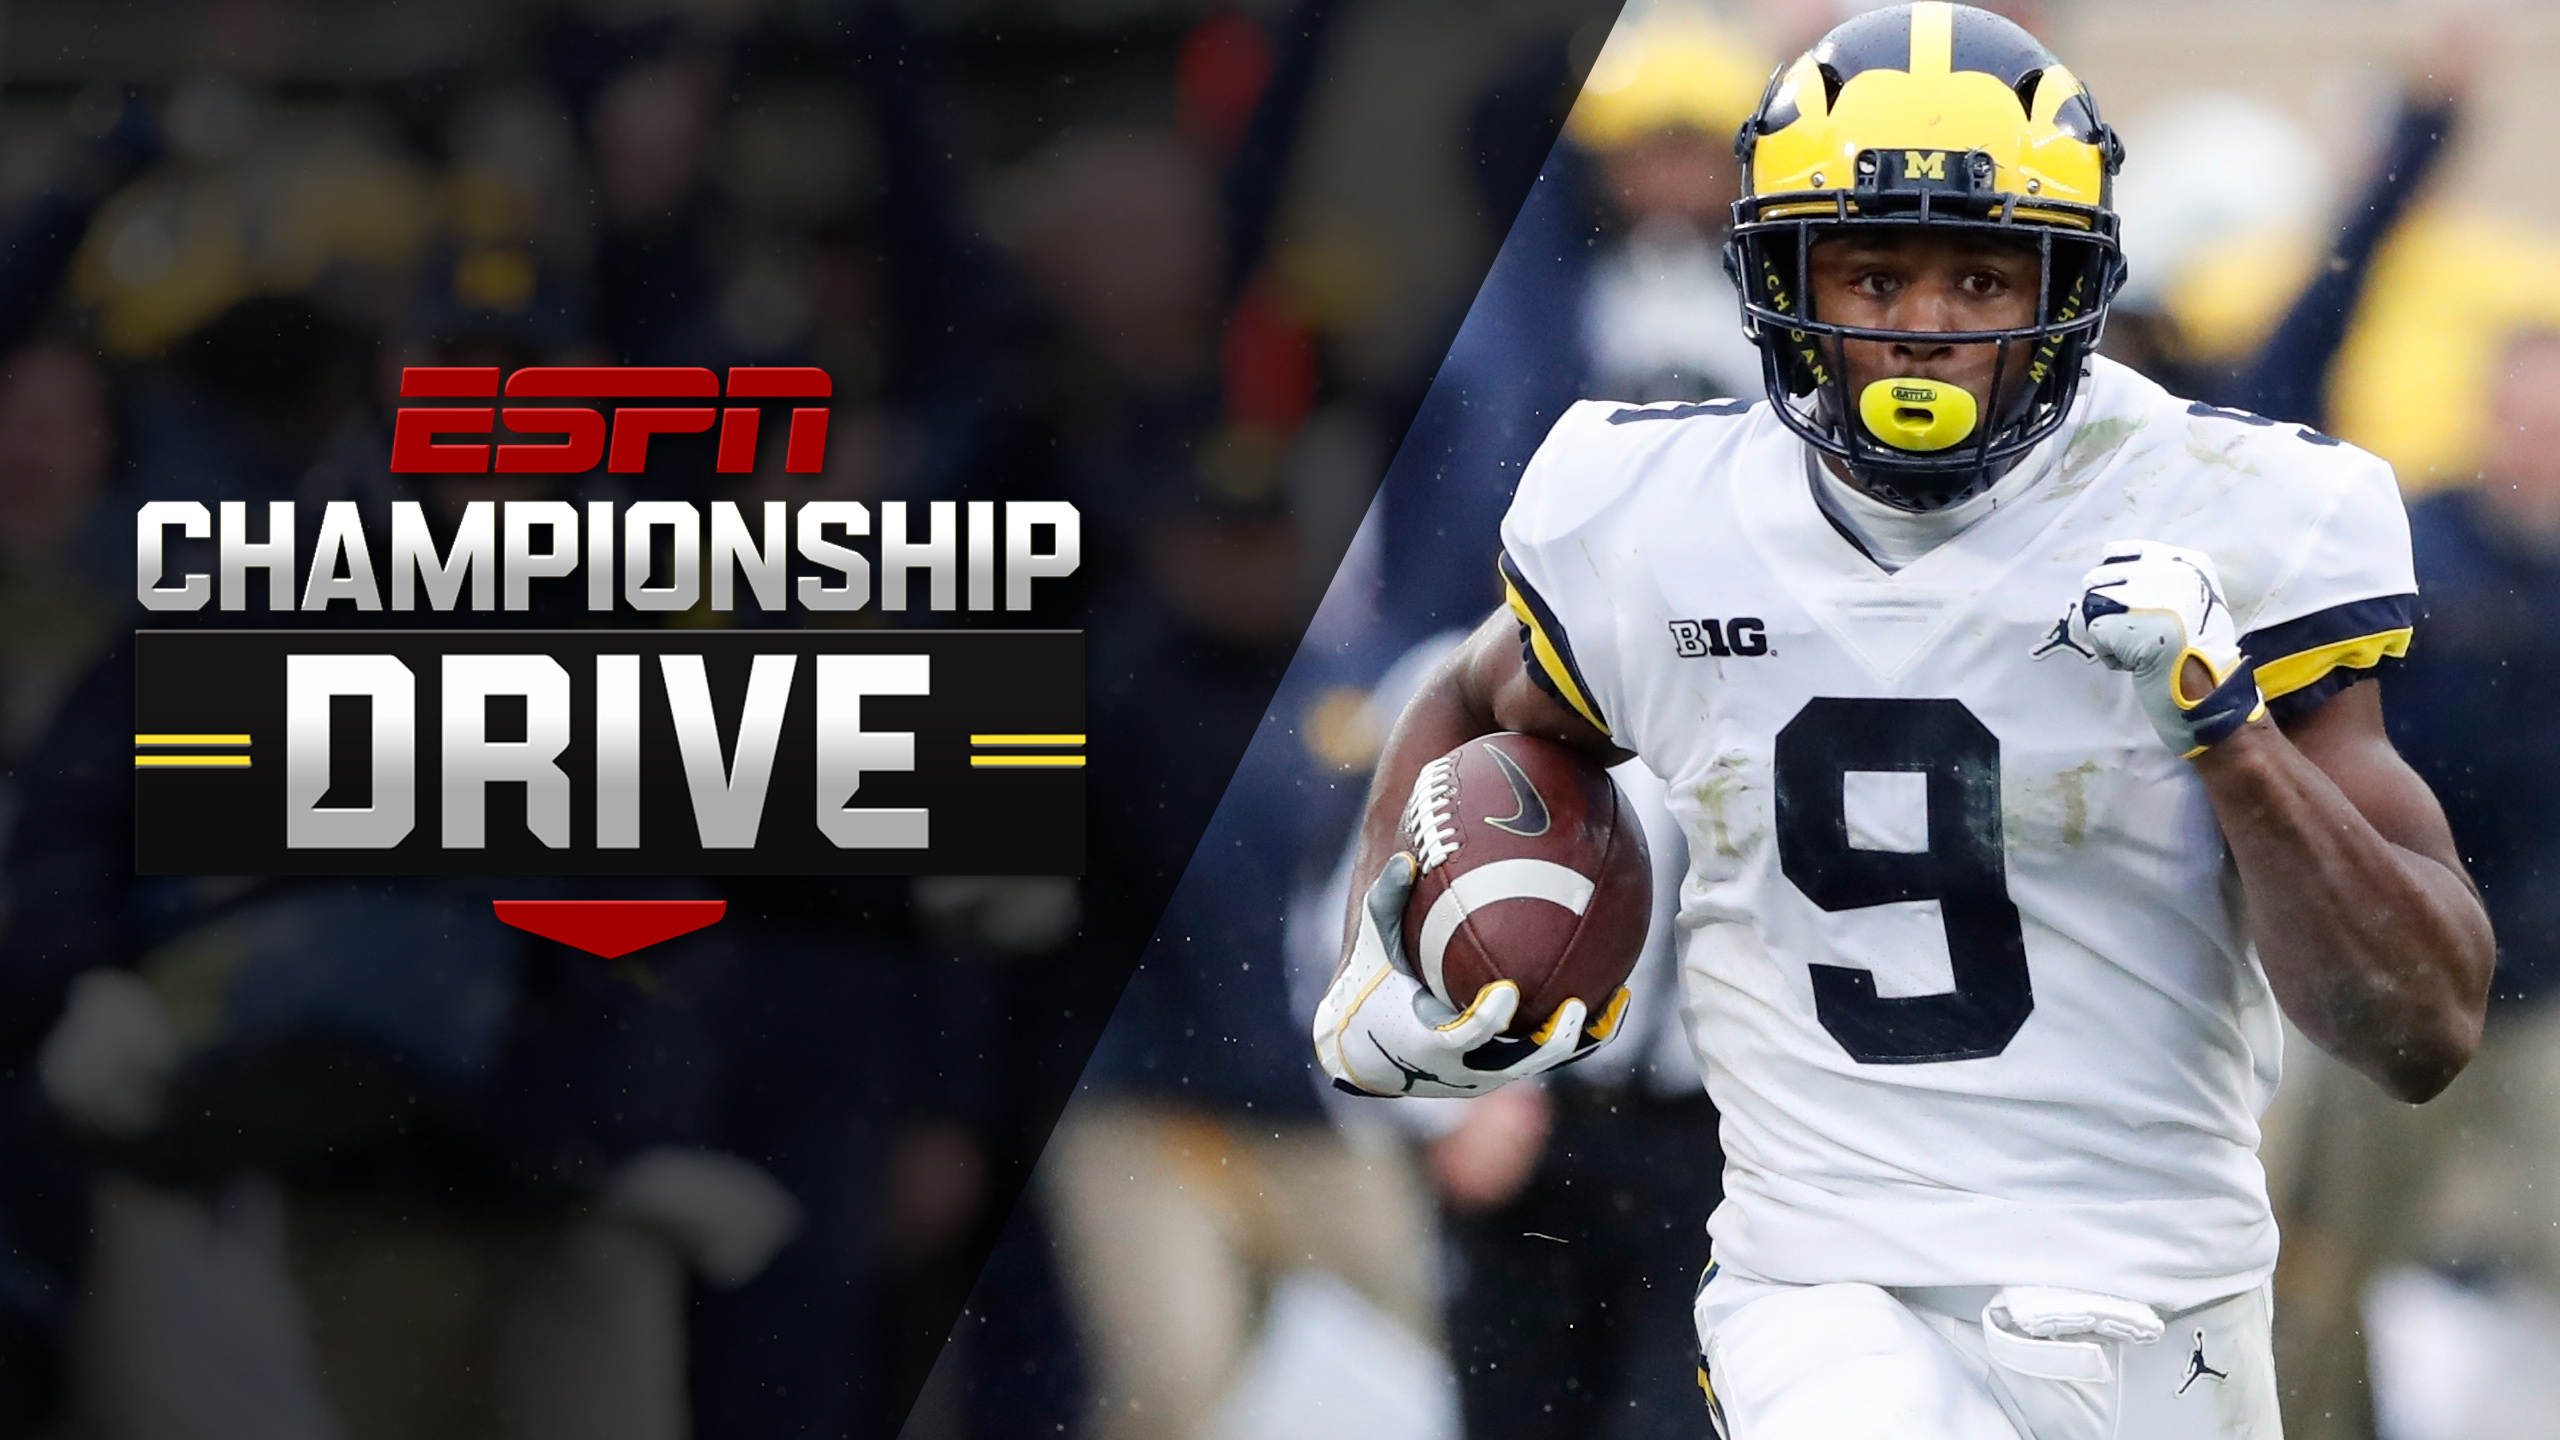 Championship Drive: Who's In? Presented by Northwestern Mutual